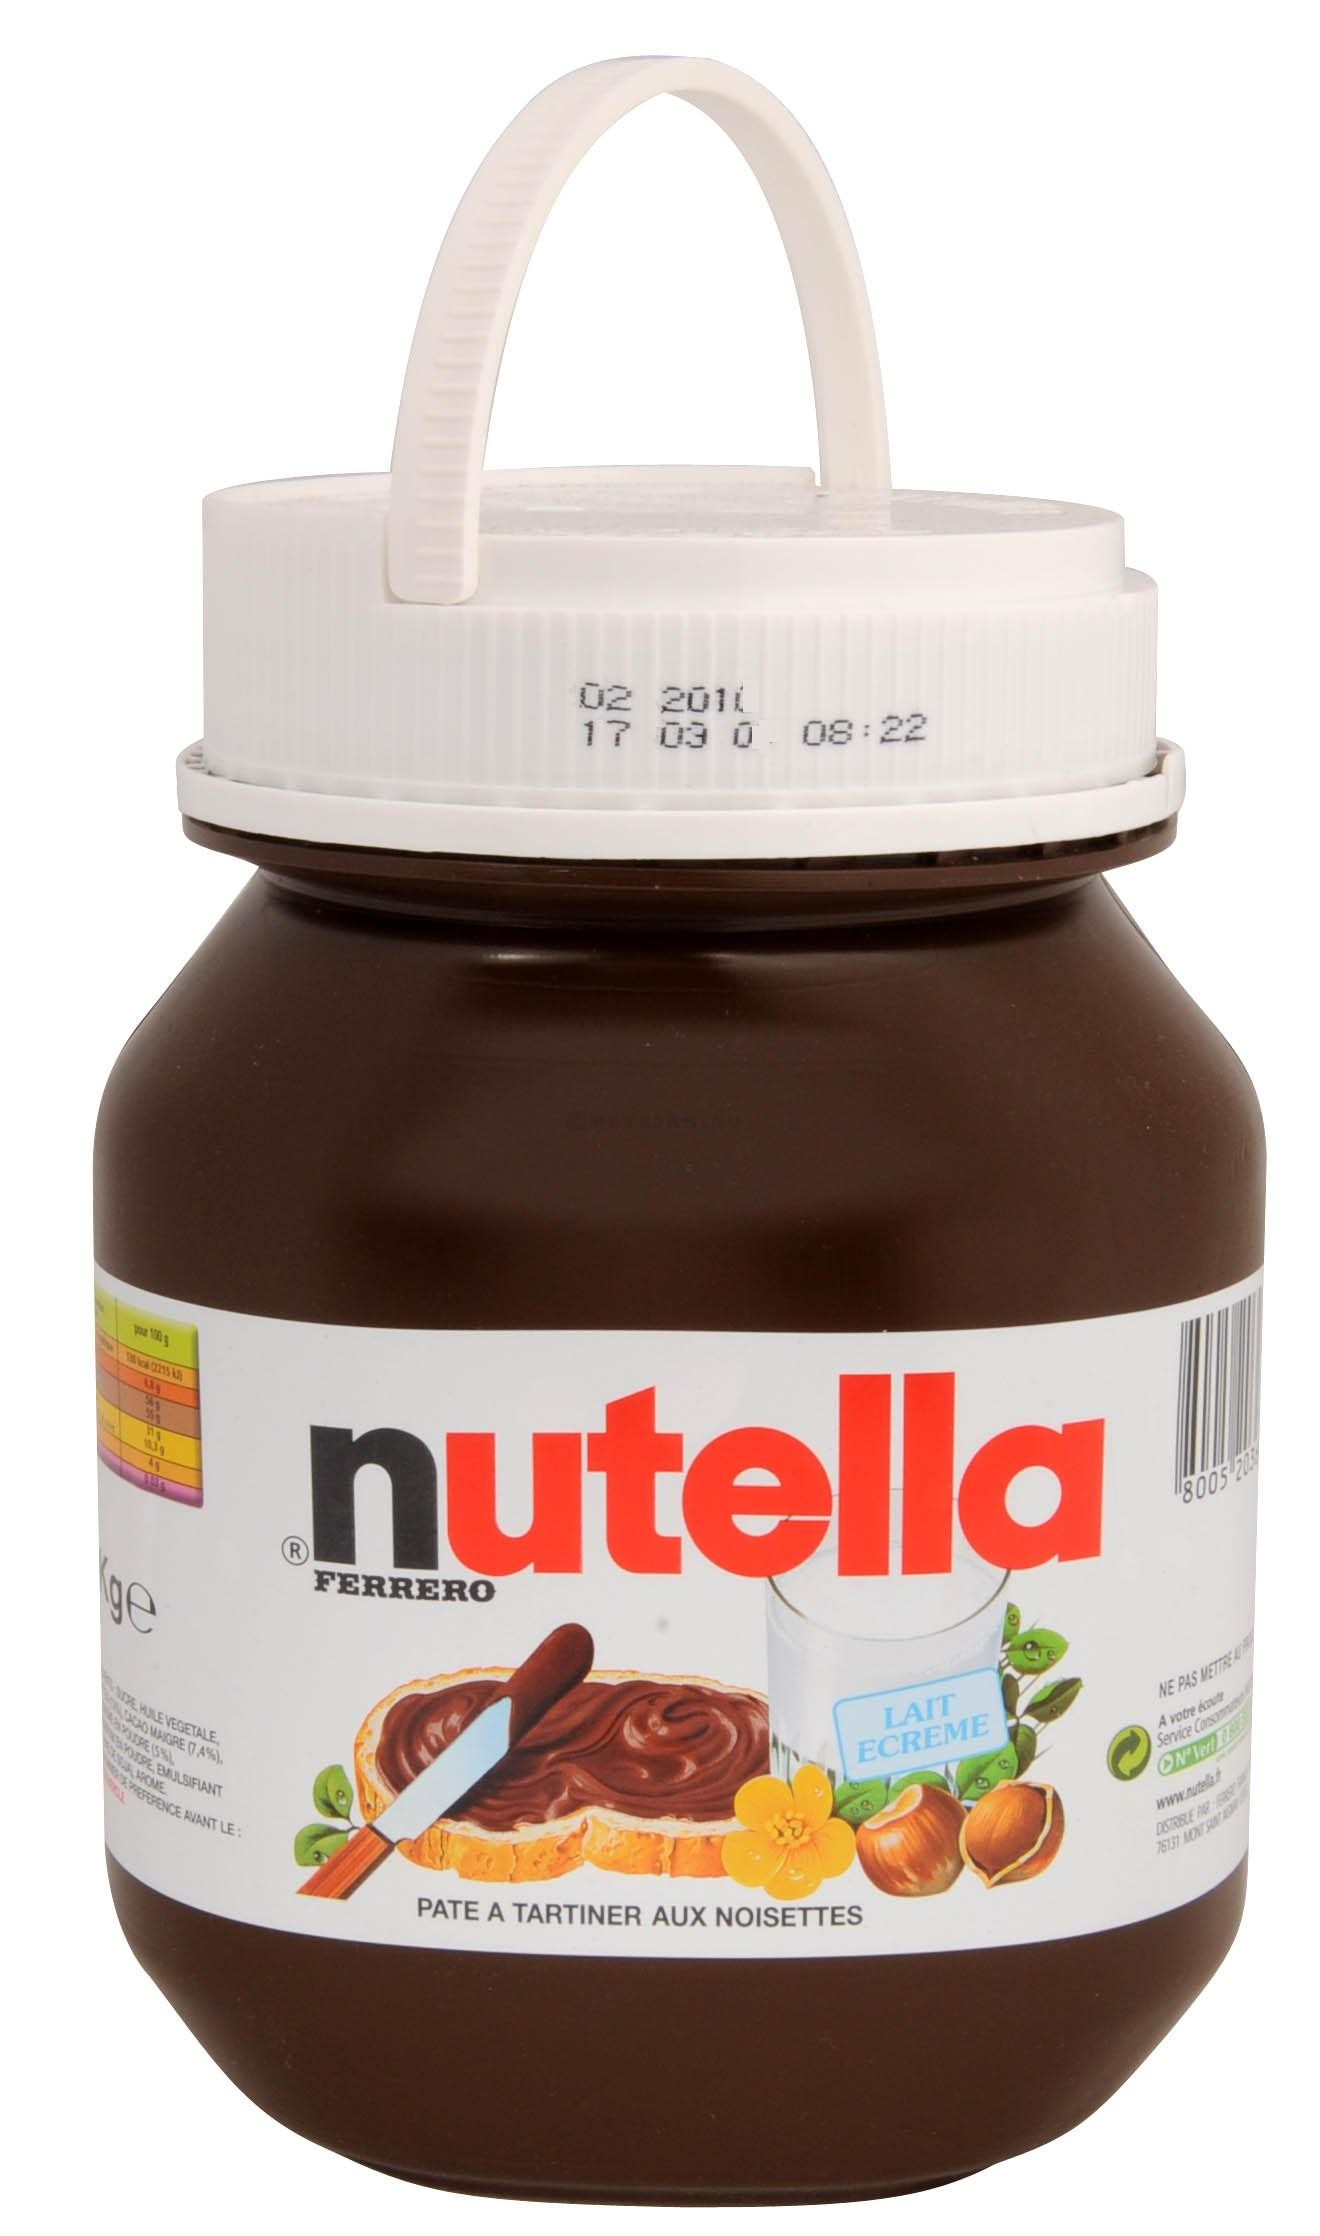 nutella hazelnootpasta 5kg ferrero online kopen. Black Bedroom Furniture Sets. Home Design Ideas